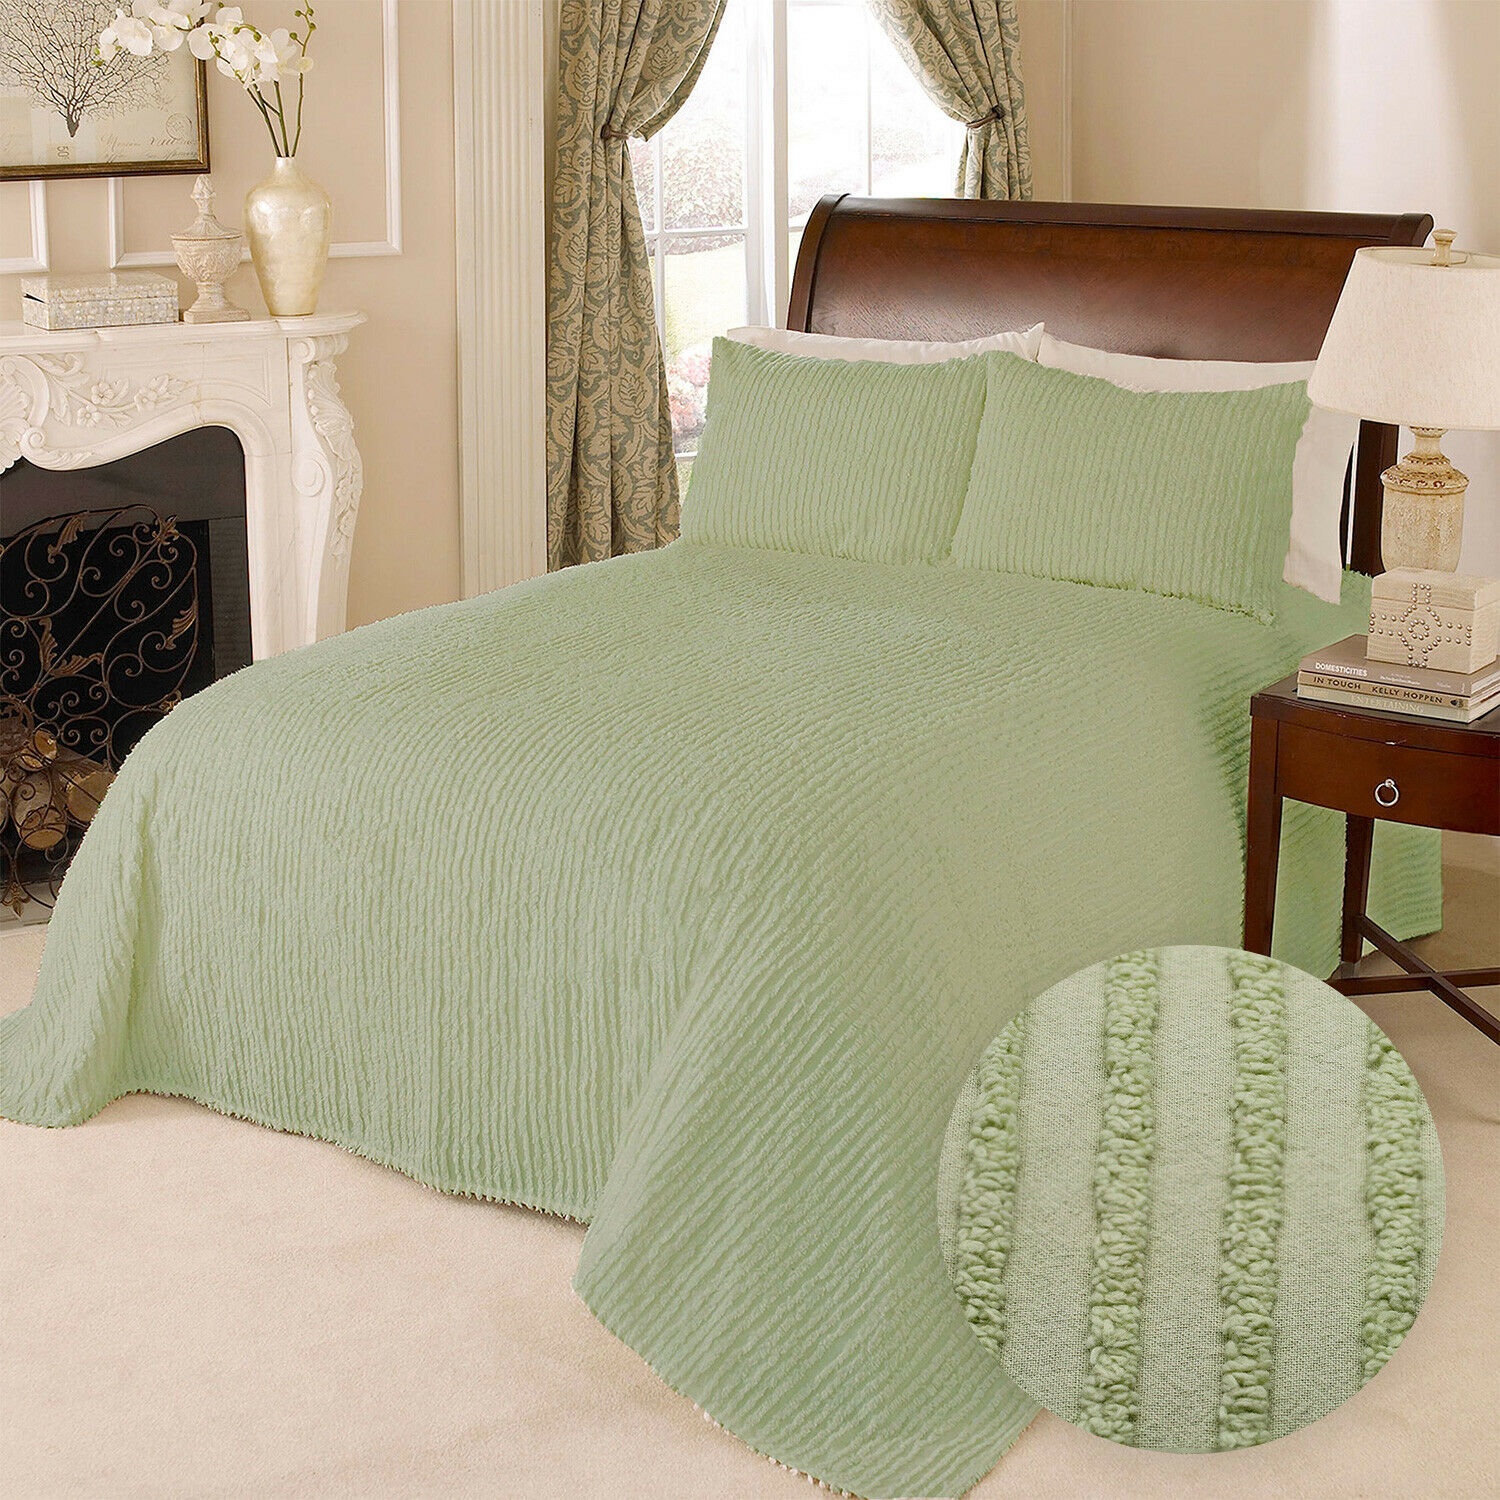 100% Cotton Tufted Chenille Stripe Bedspread Bedding Twin Full Queen King, Green Bedding